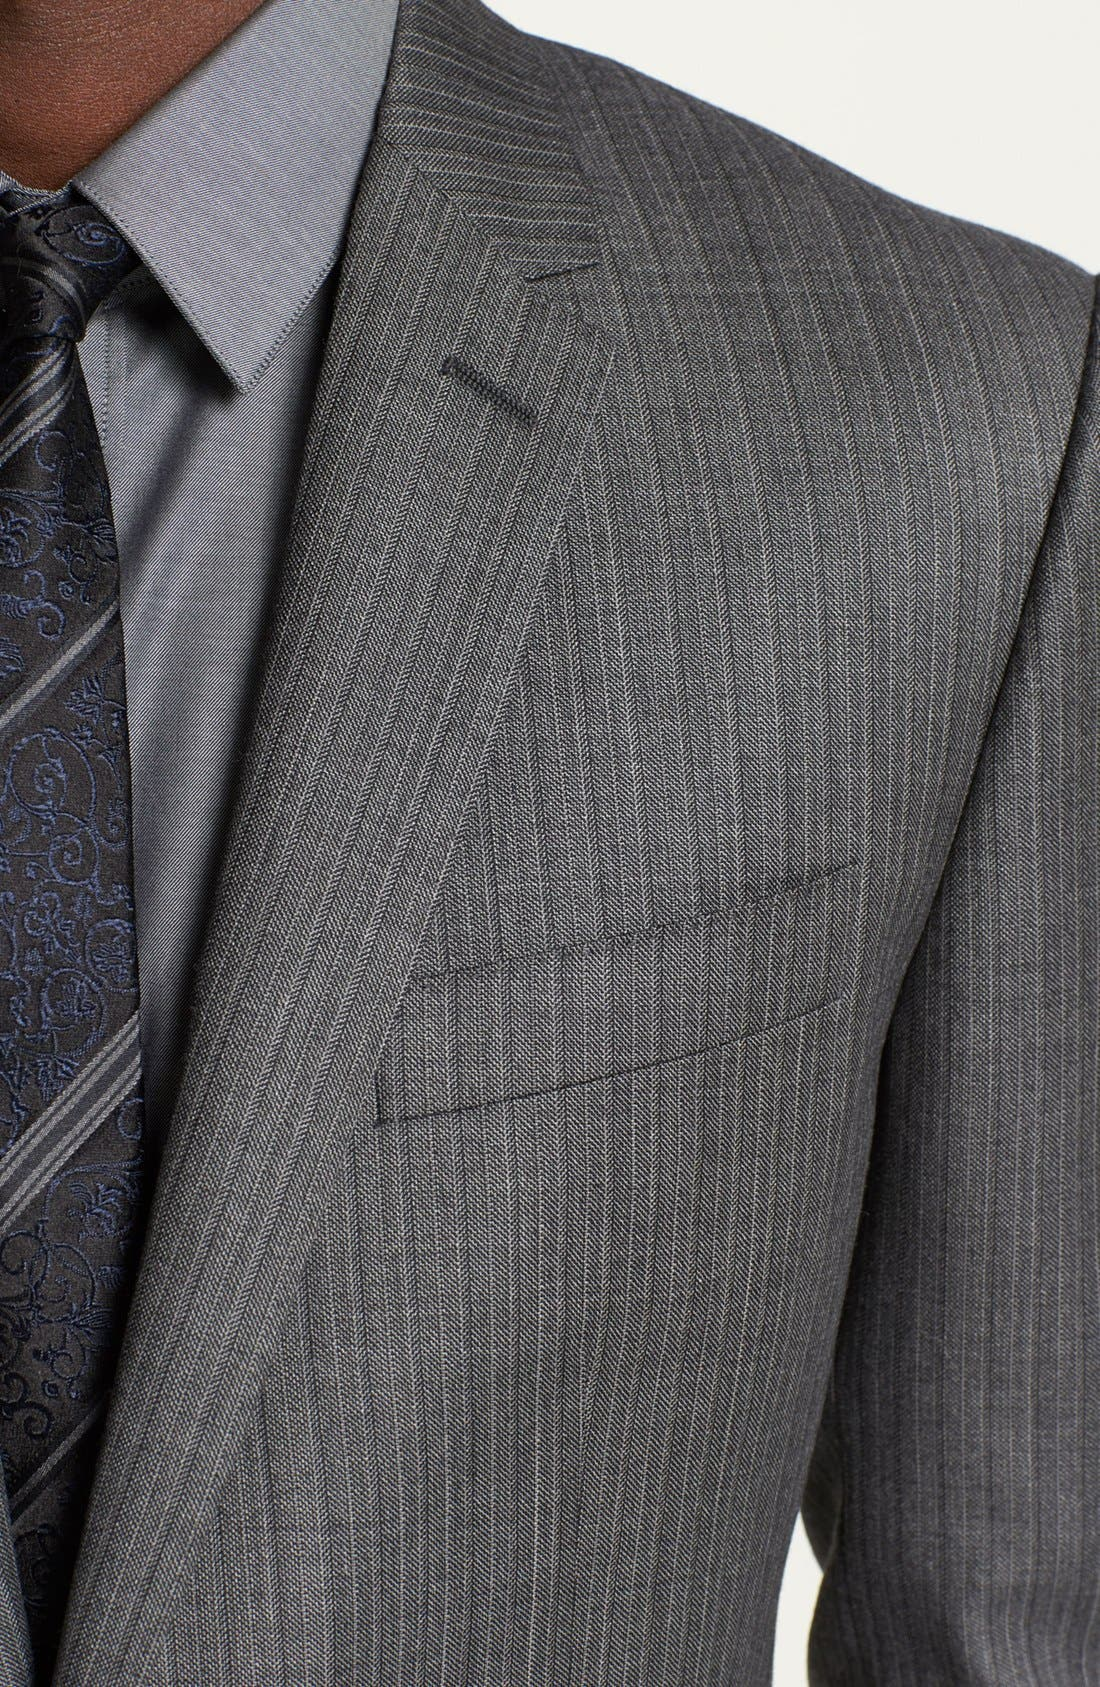 Alternate Image 2  - Dolce&Gabbana 'Martini' Herringbone Wool Suit